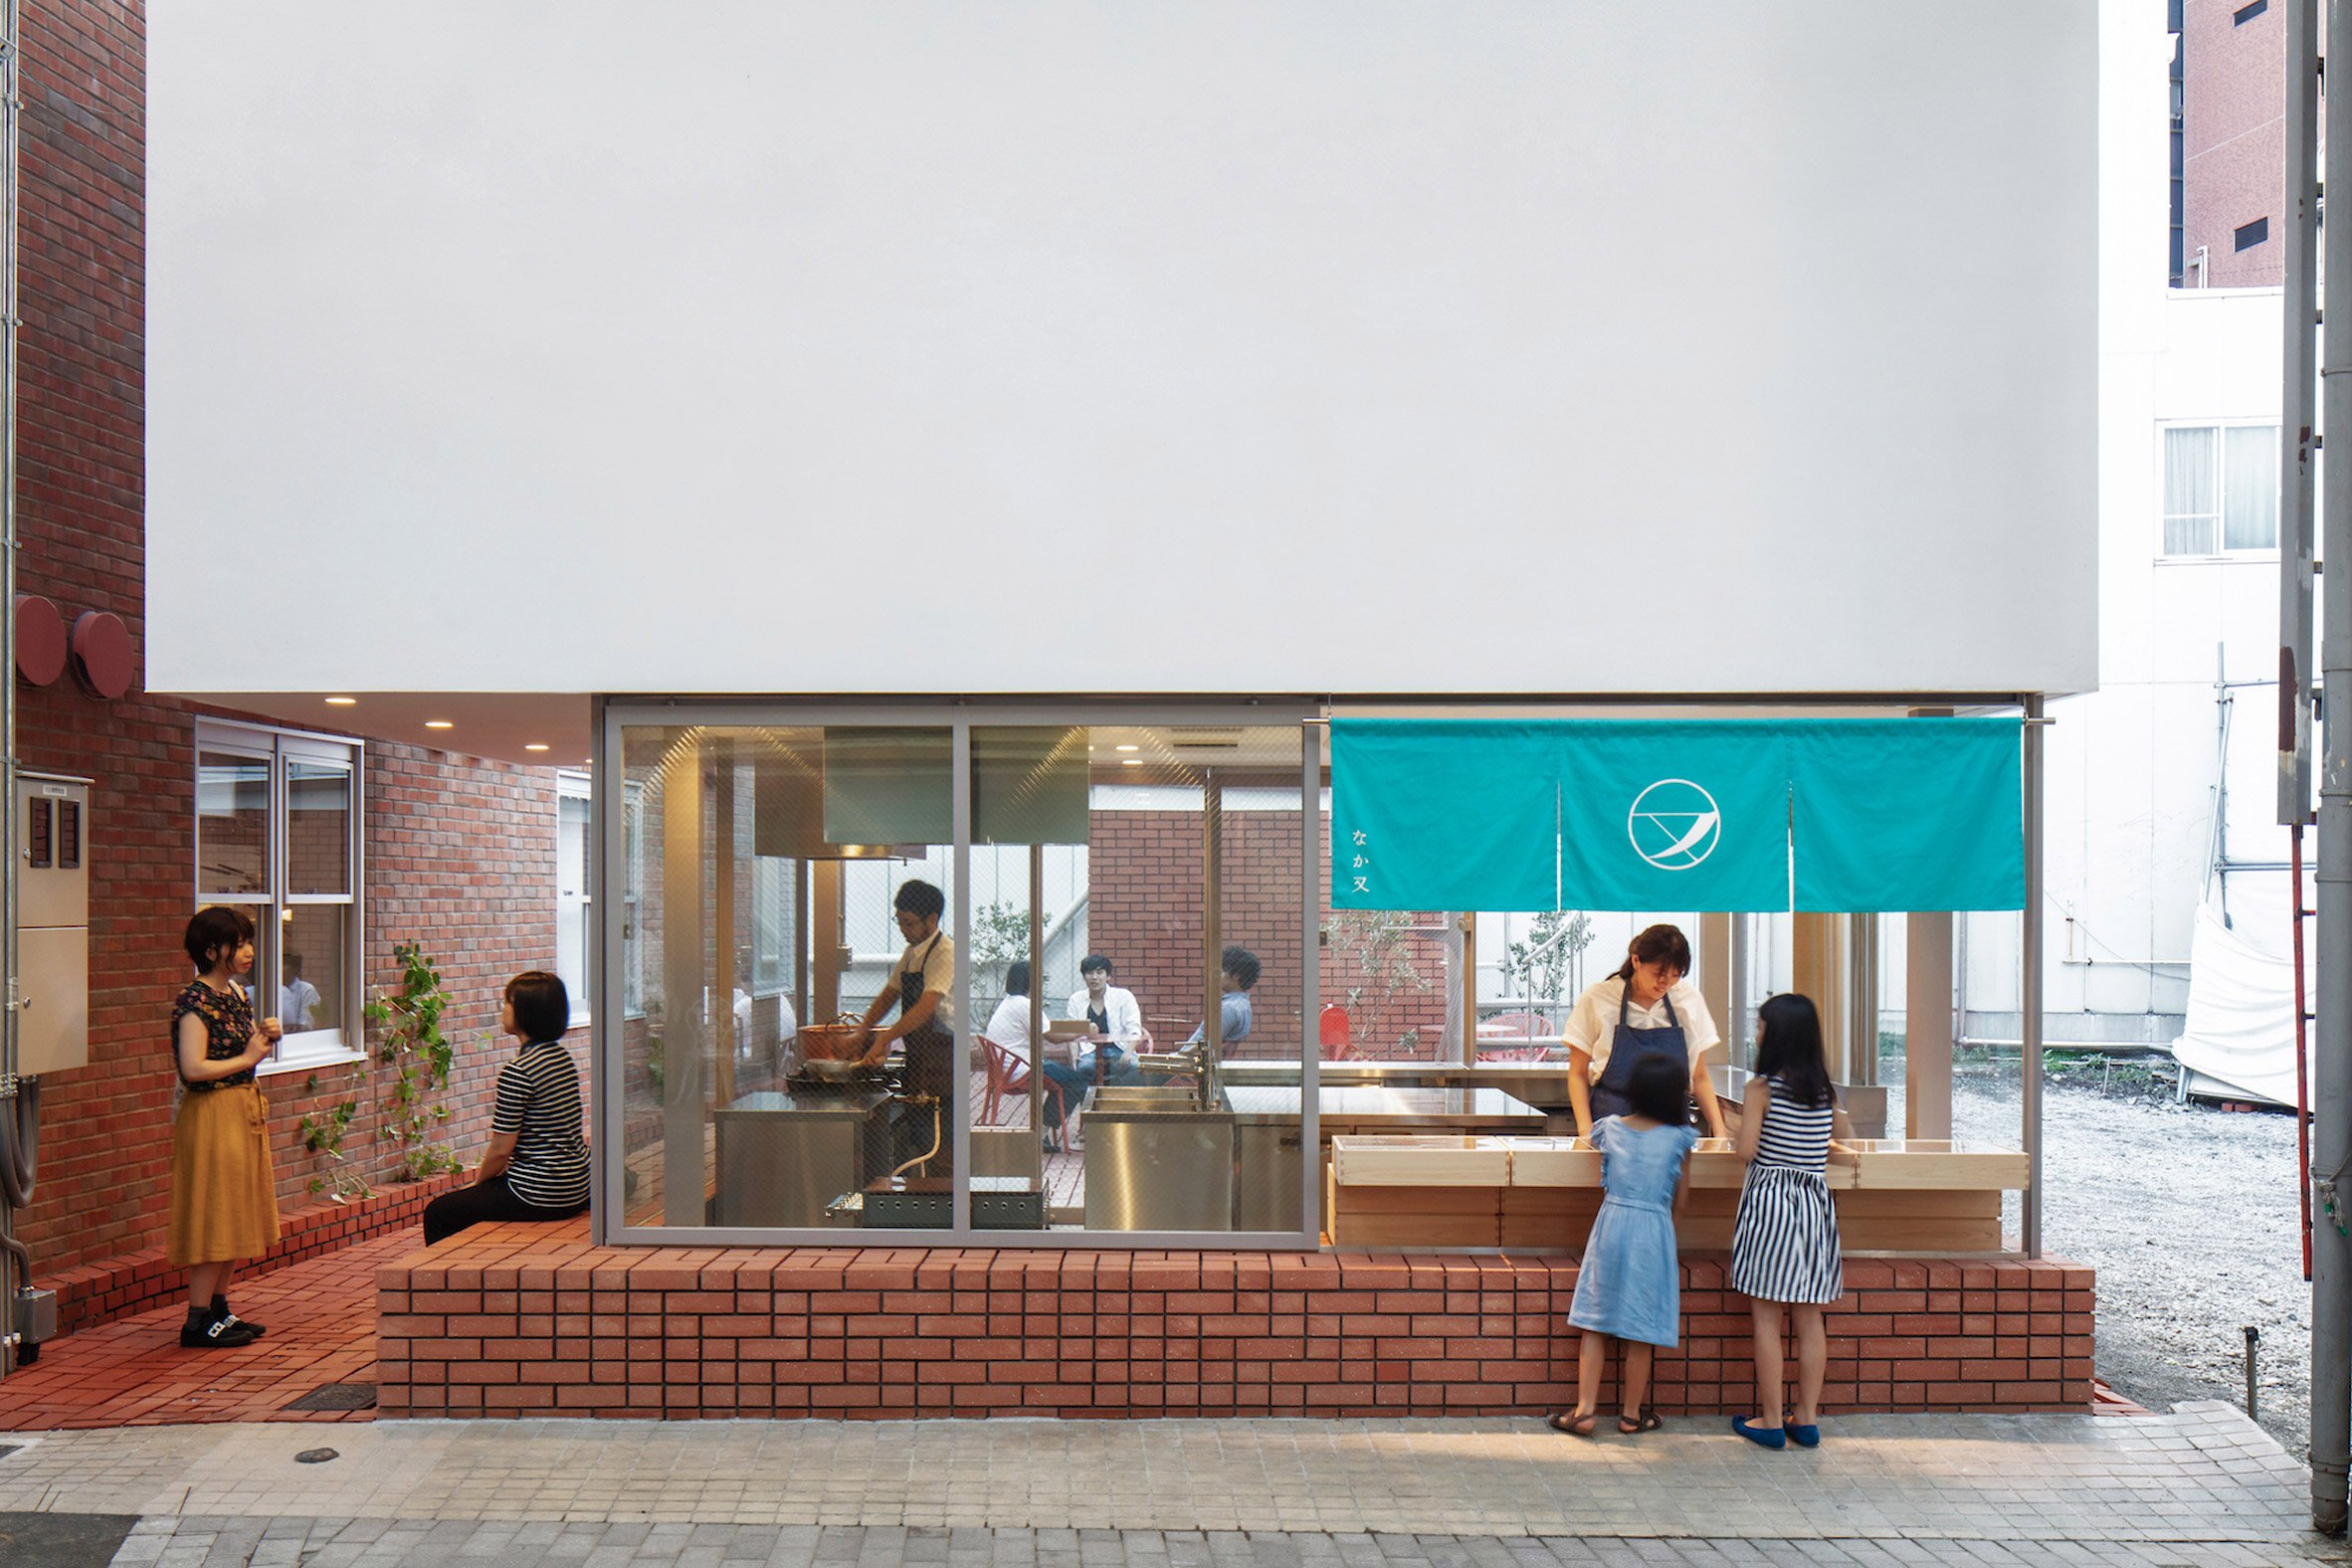 Customers outside brick-clad sweet store